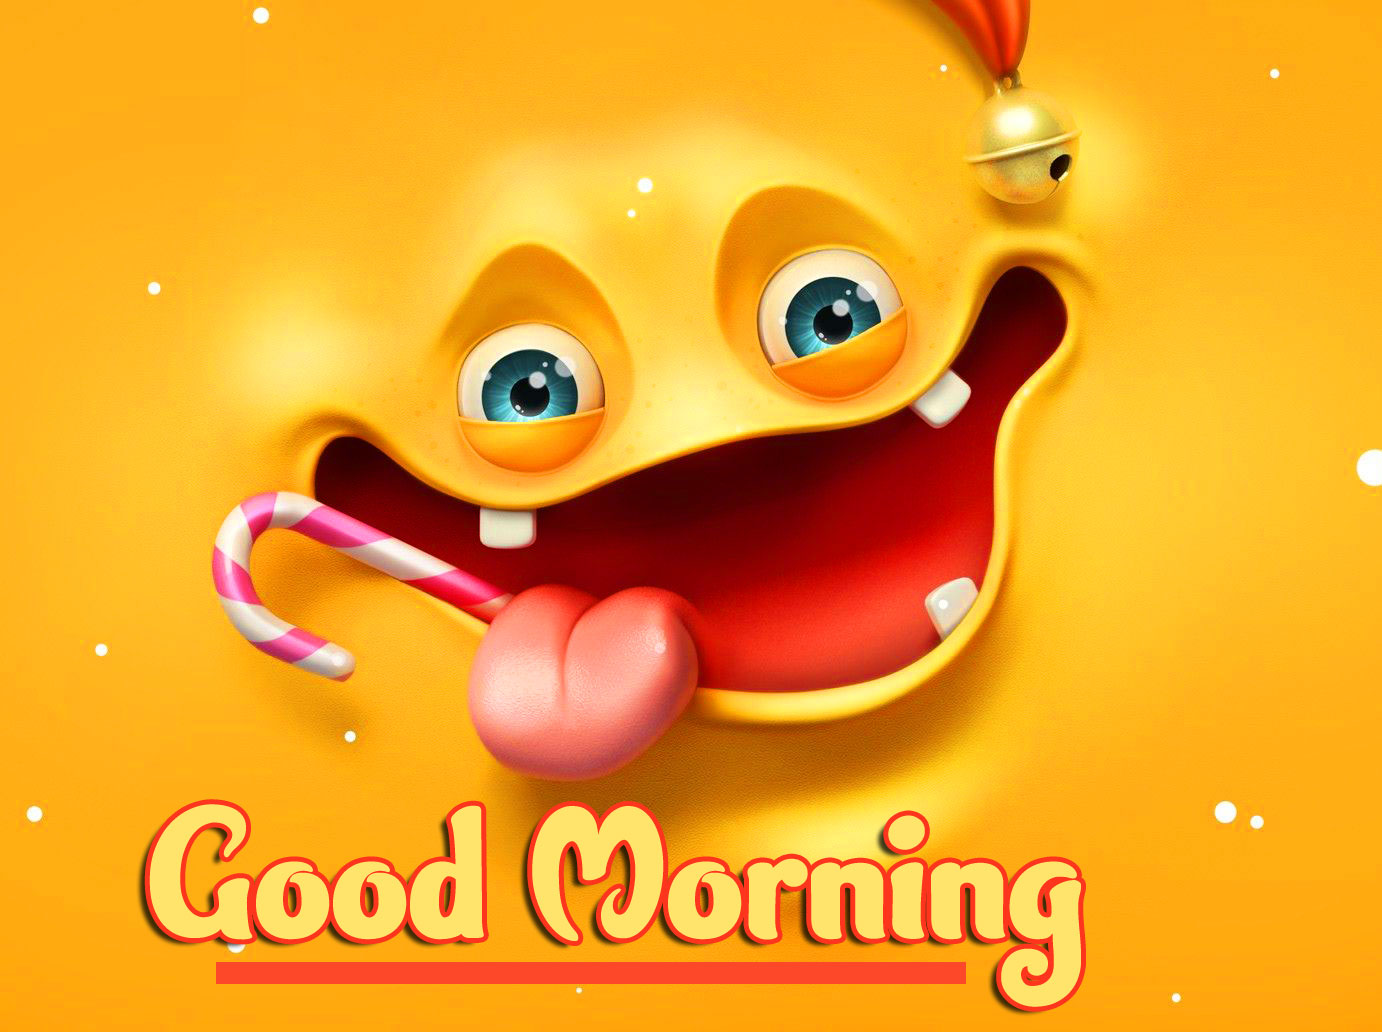 Funny Good Morning Wishes Images Download 56